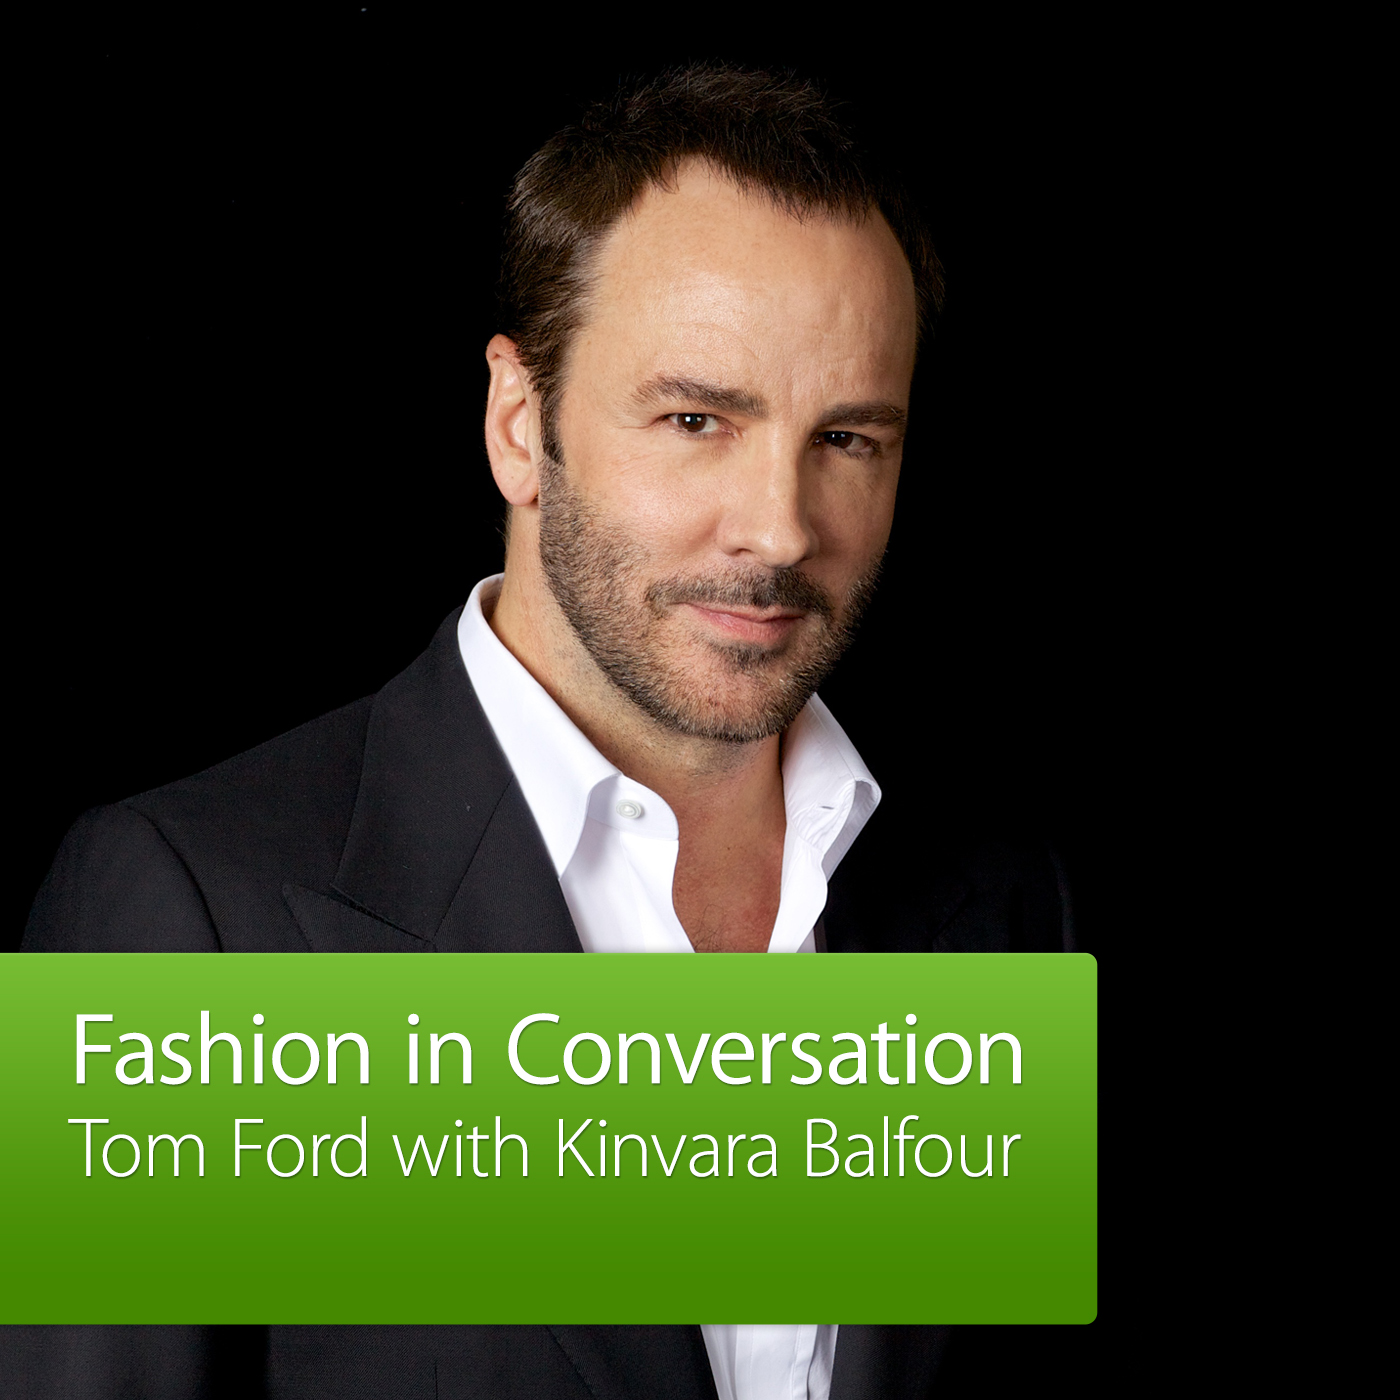 Tom Ford with Kinvara Balfour